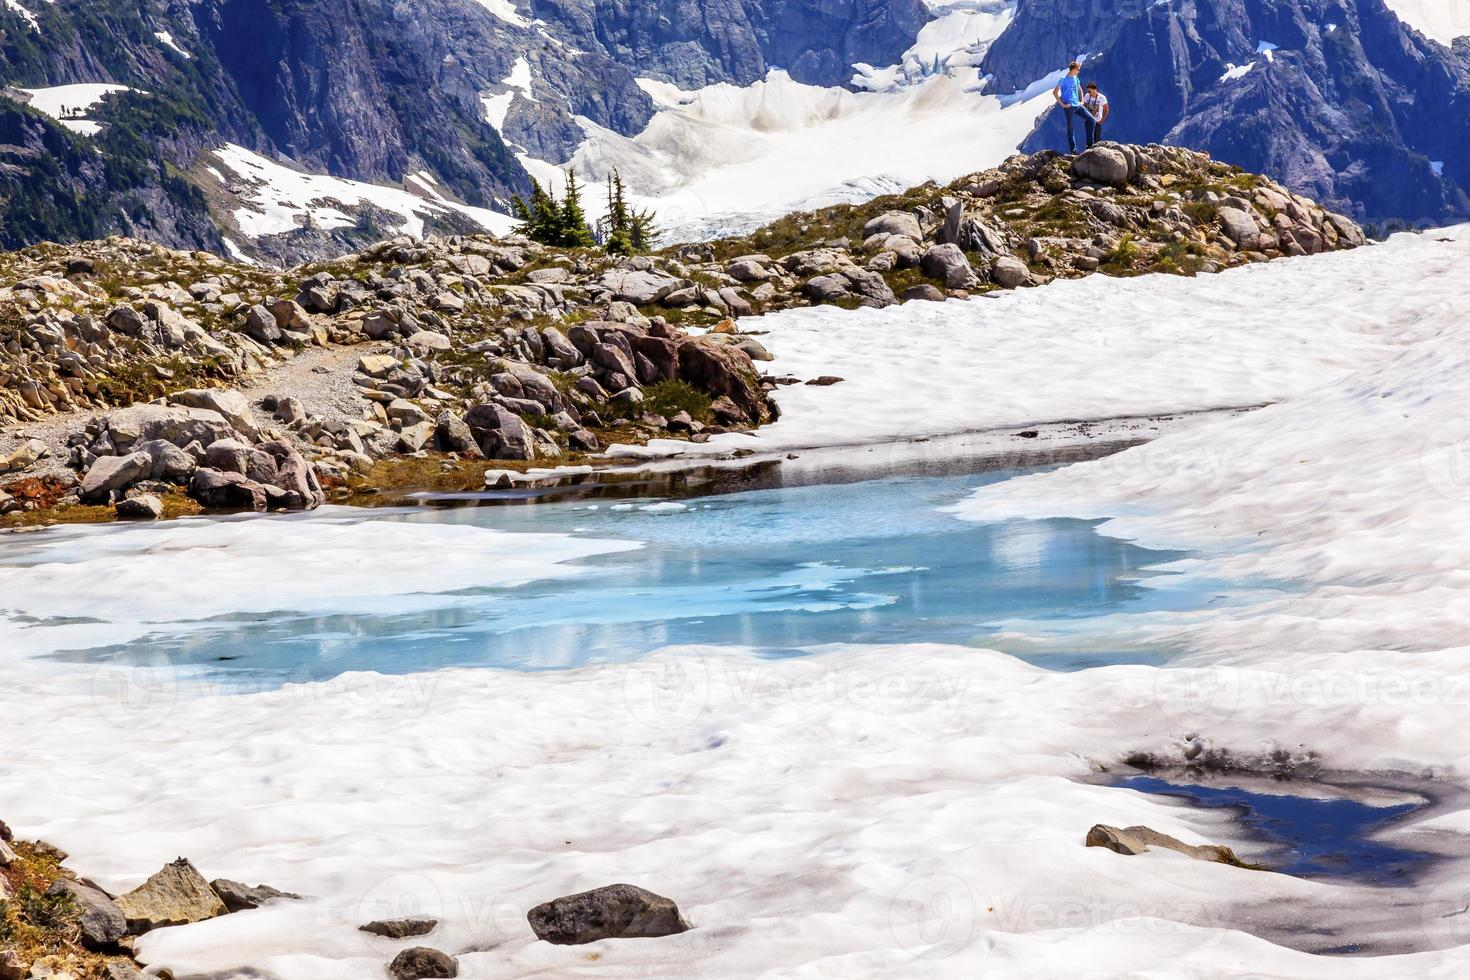 Mount Shuksan piscina de nieve azul Artist Point Washington, EE. foto